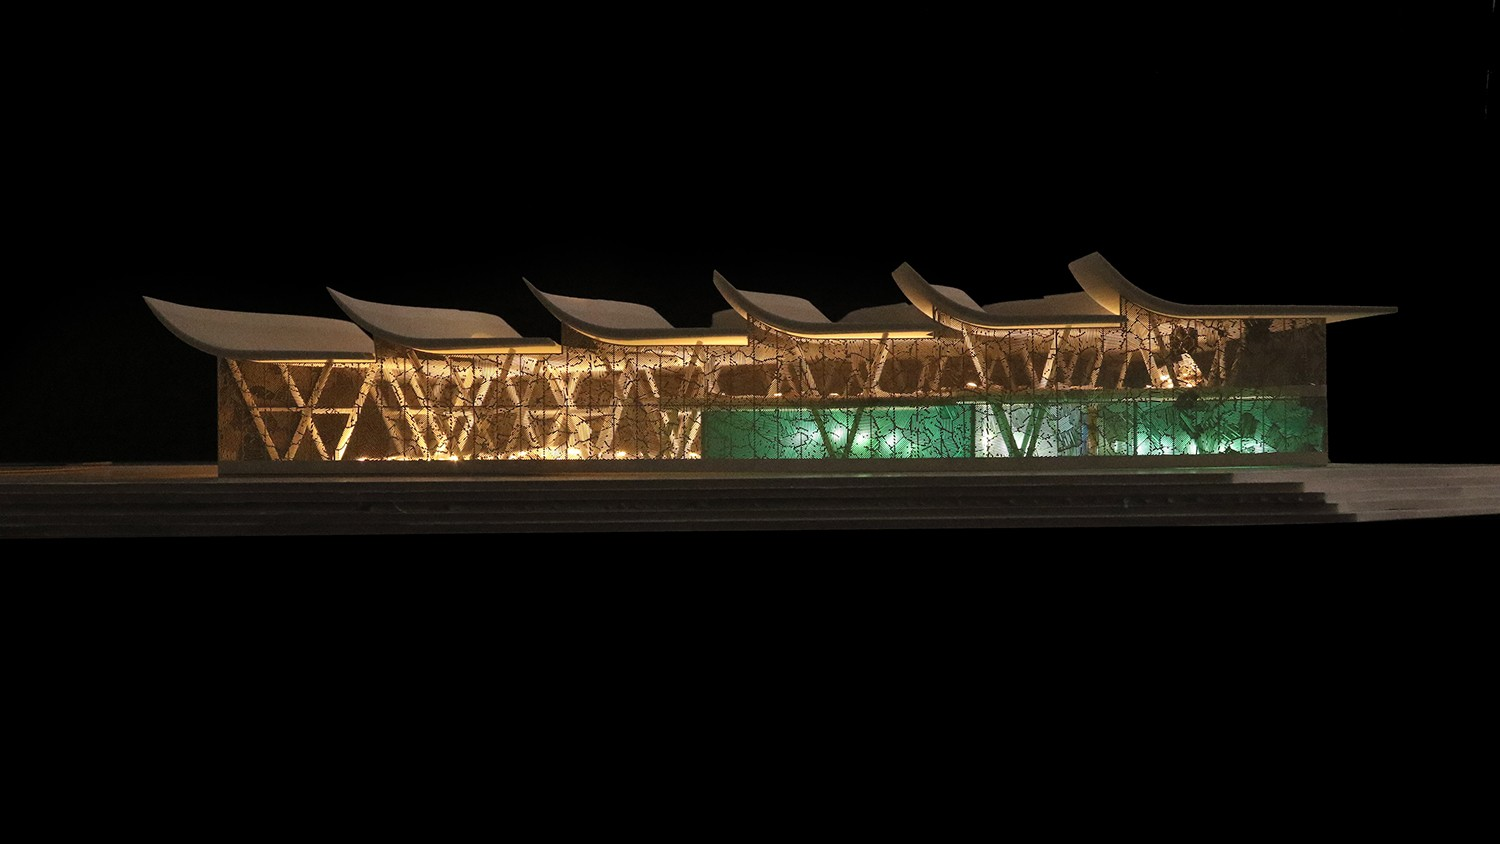 https://stevenholl.sfo2.digitaloceanspaces.com/uploads/projects/project-images/StevenHollArchitects_Malawi_Model_Night_2_WH.jpg